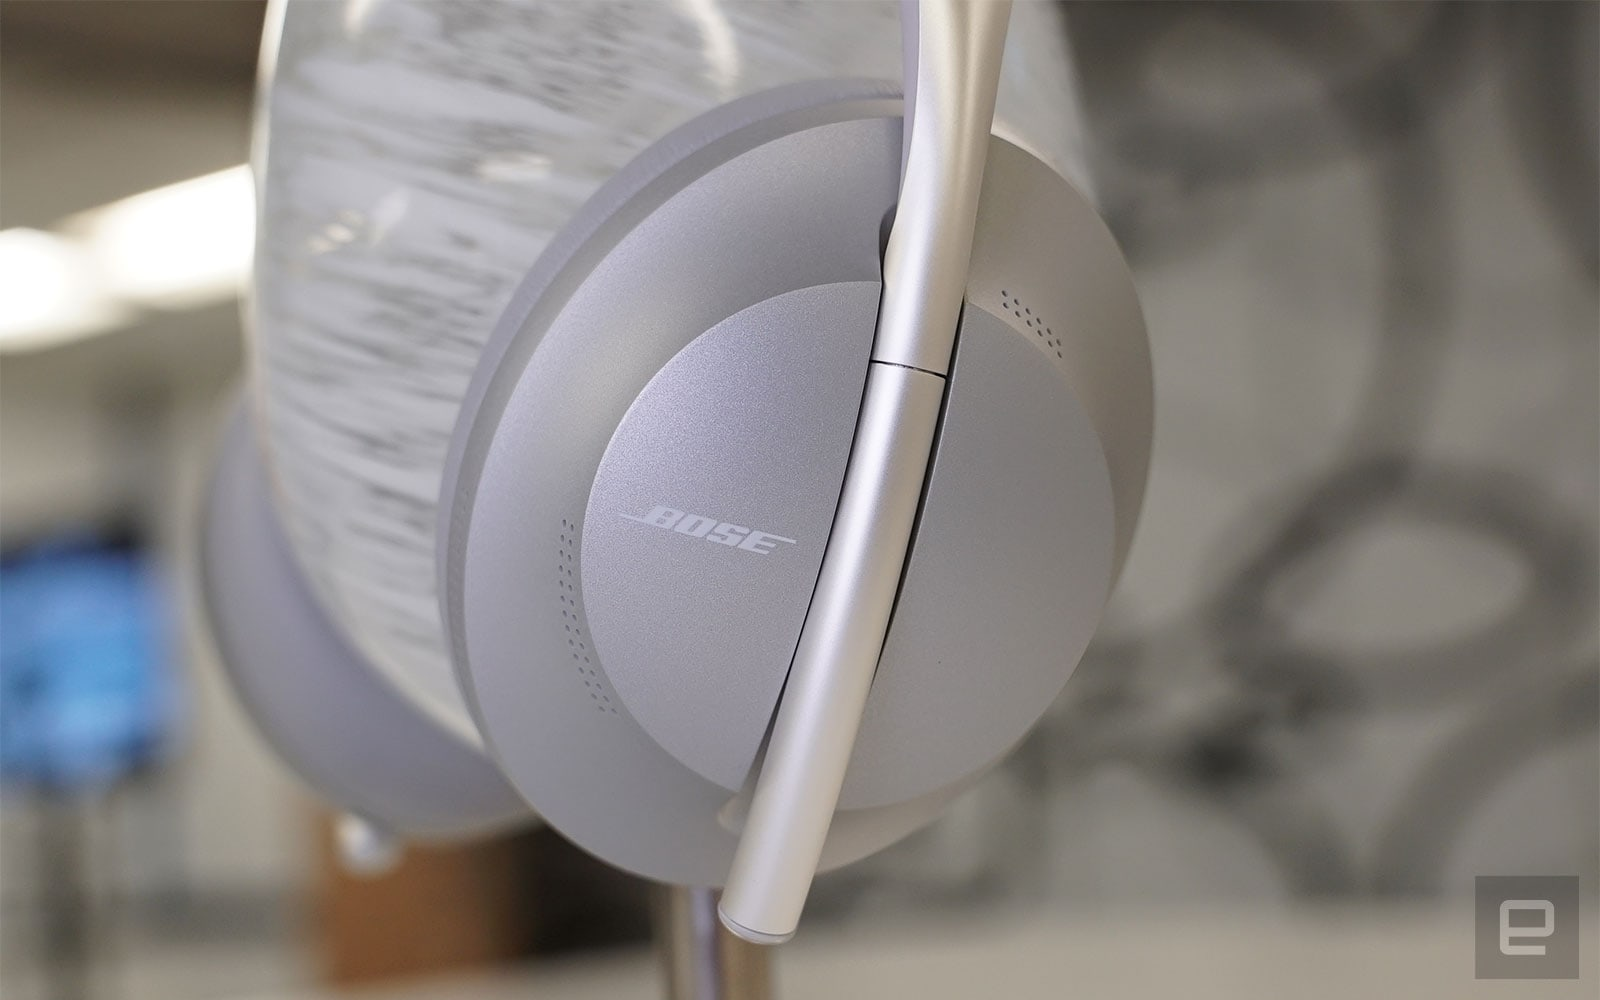 Bose Noise Cancelling Headphones 700 评测